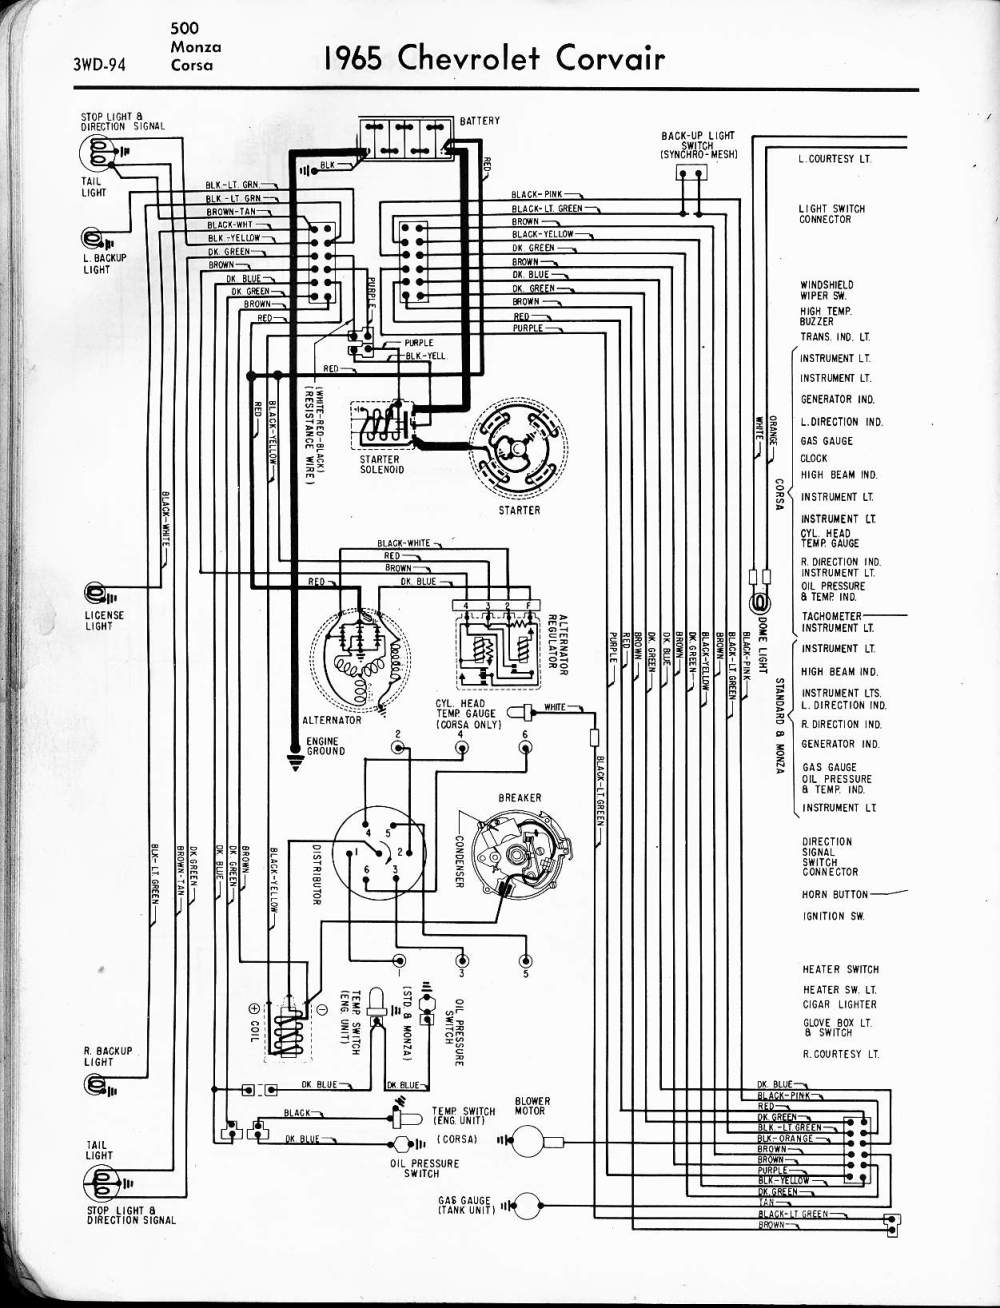 medium resolution of wiring diagram for 1962 chevrolet corvair all models wiringwiring diagram for 1962 chevrolet corvair all models